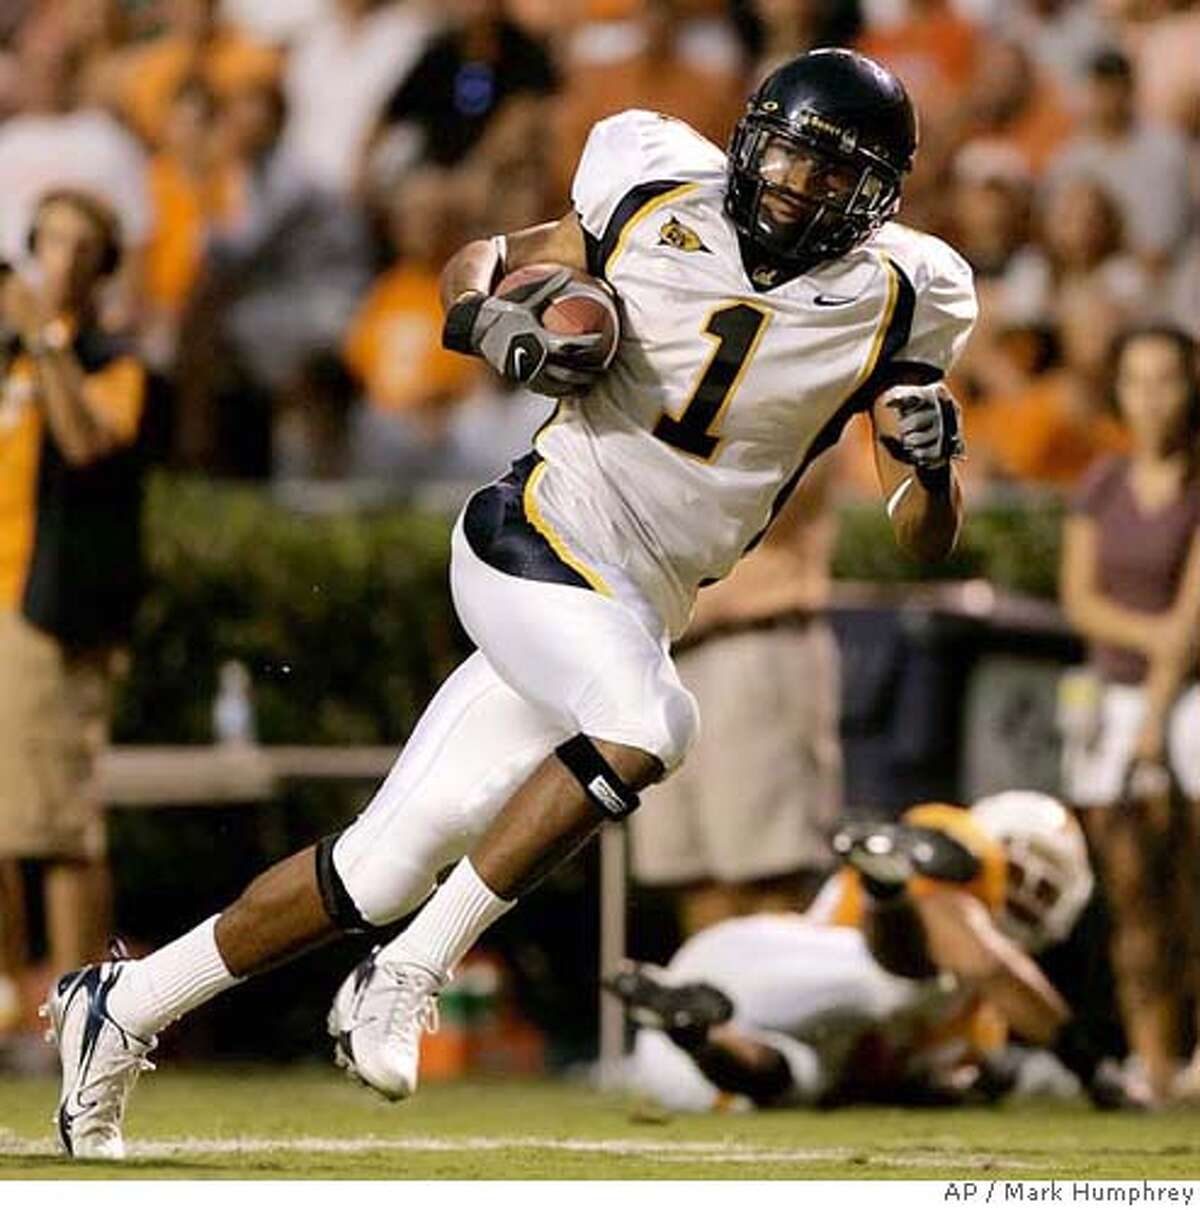 California wide receiver DeSean Jackson (1) scores a touchdown against Tennessee on a 40-yard pass reception in the fourth quarter of their college football game on Saturday, Sept. 2, 2006, in Knoxville, Tenn. Tennessee upset California, 35-18. (AP Photo/Mark Humphrey)